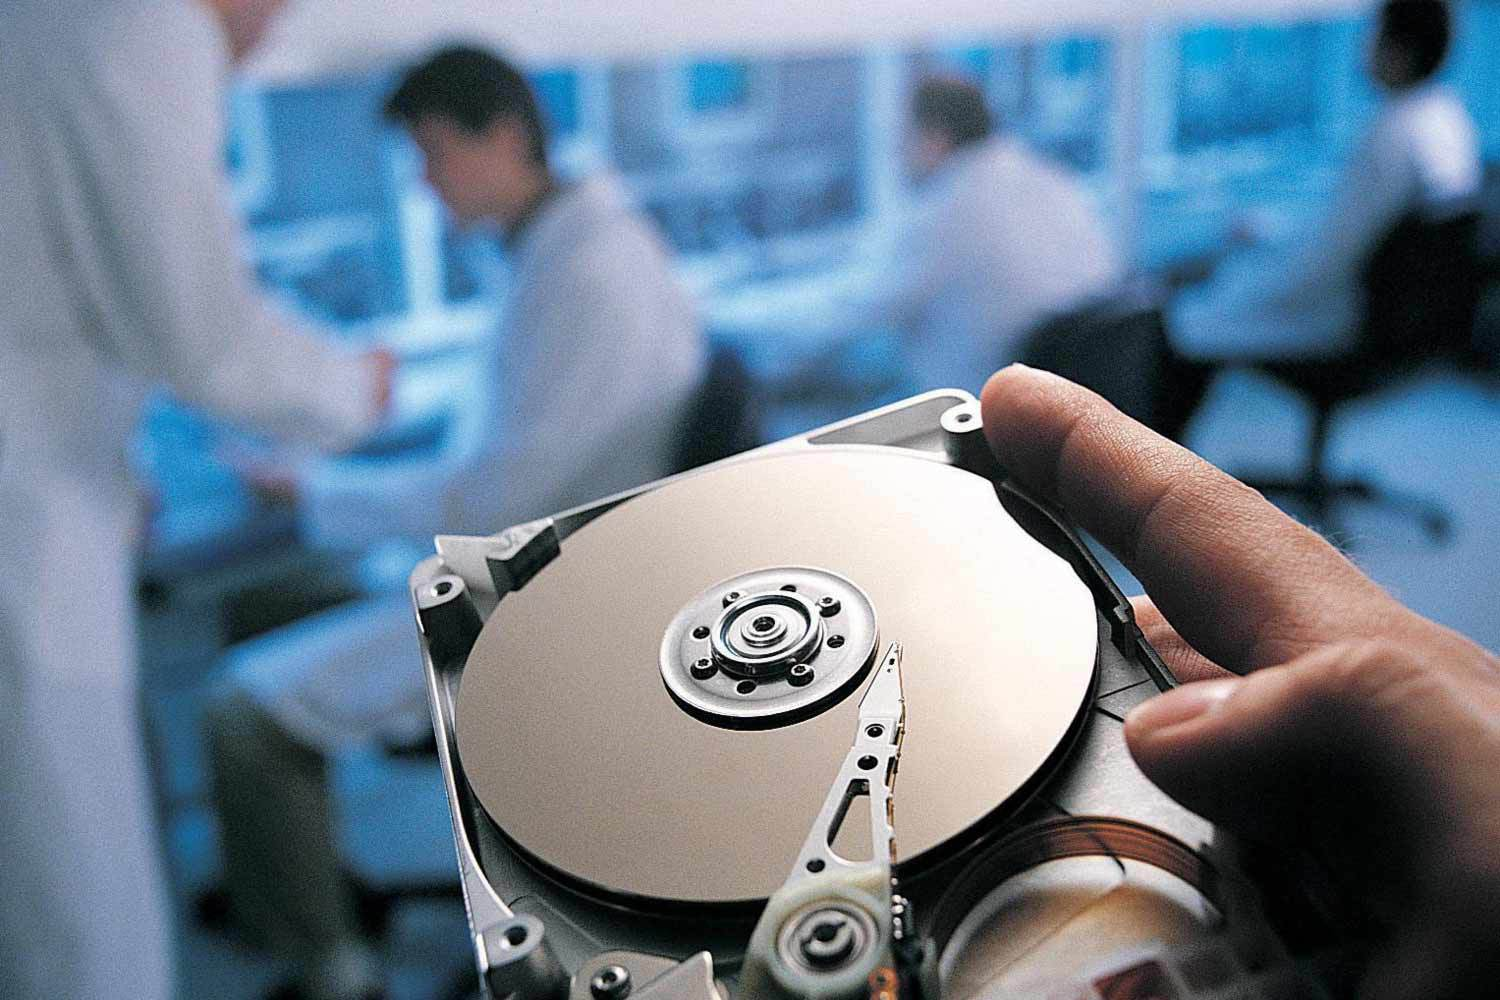 brooklyn data recovery services